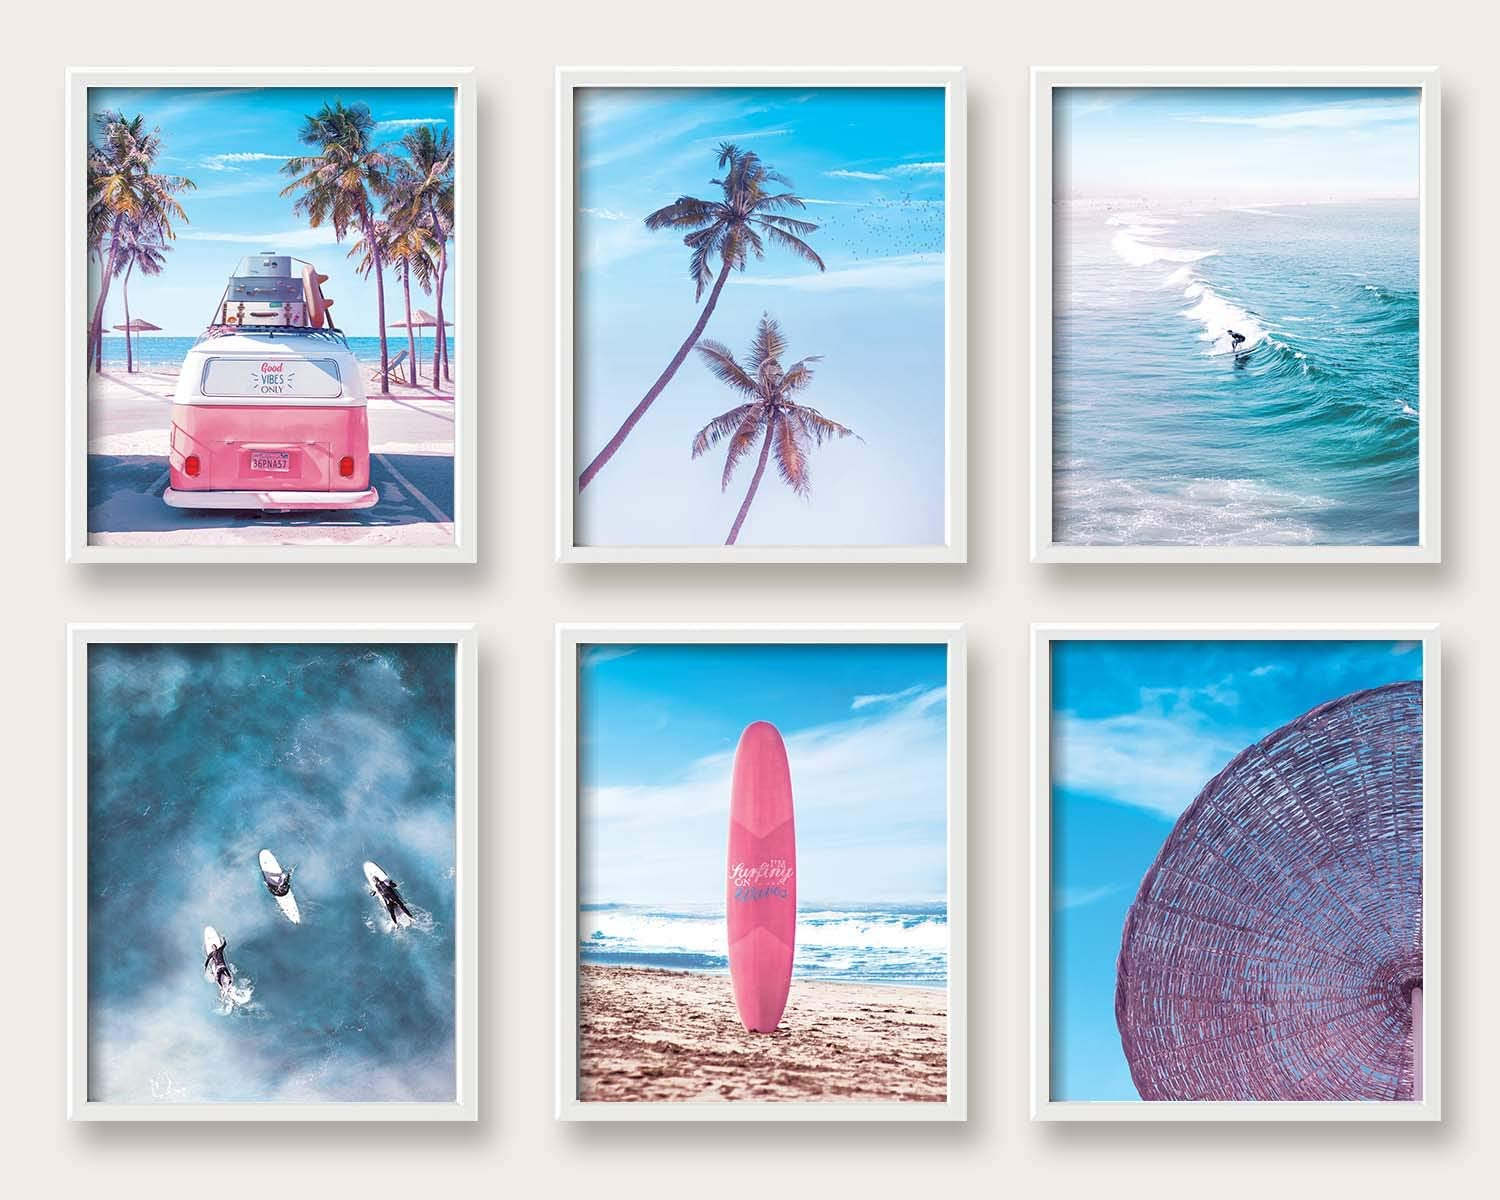 Print'N'Art, California Beach Themed Decor For Home - 8x10 Inches Unframed Set of 6, Retro VW Van, Palm Tree, Surfboard, Ocean Surfer, Parasol, Home Decorations, Wall Art Picture Print For Living Room